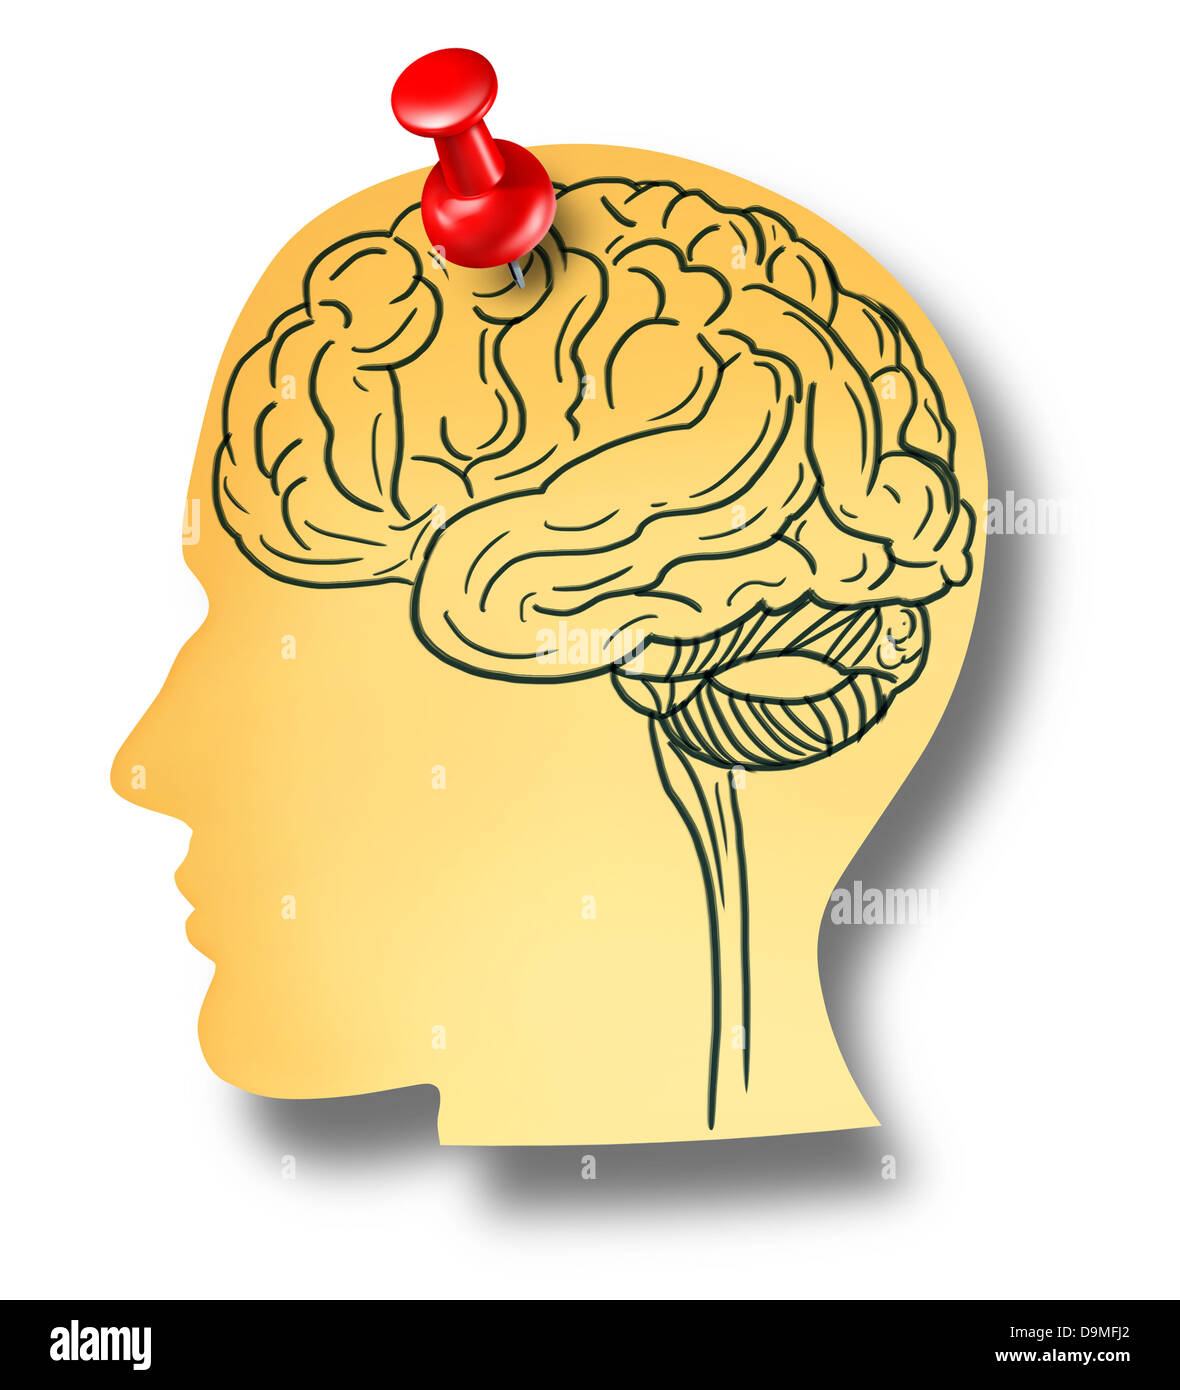 Brain reminder memory loss mental health medical concept of Dementia and Alzheimer's disease with the medical - Stock Image